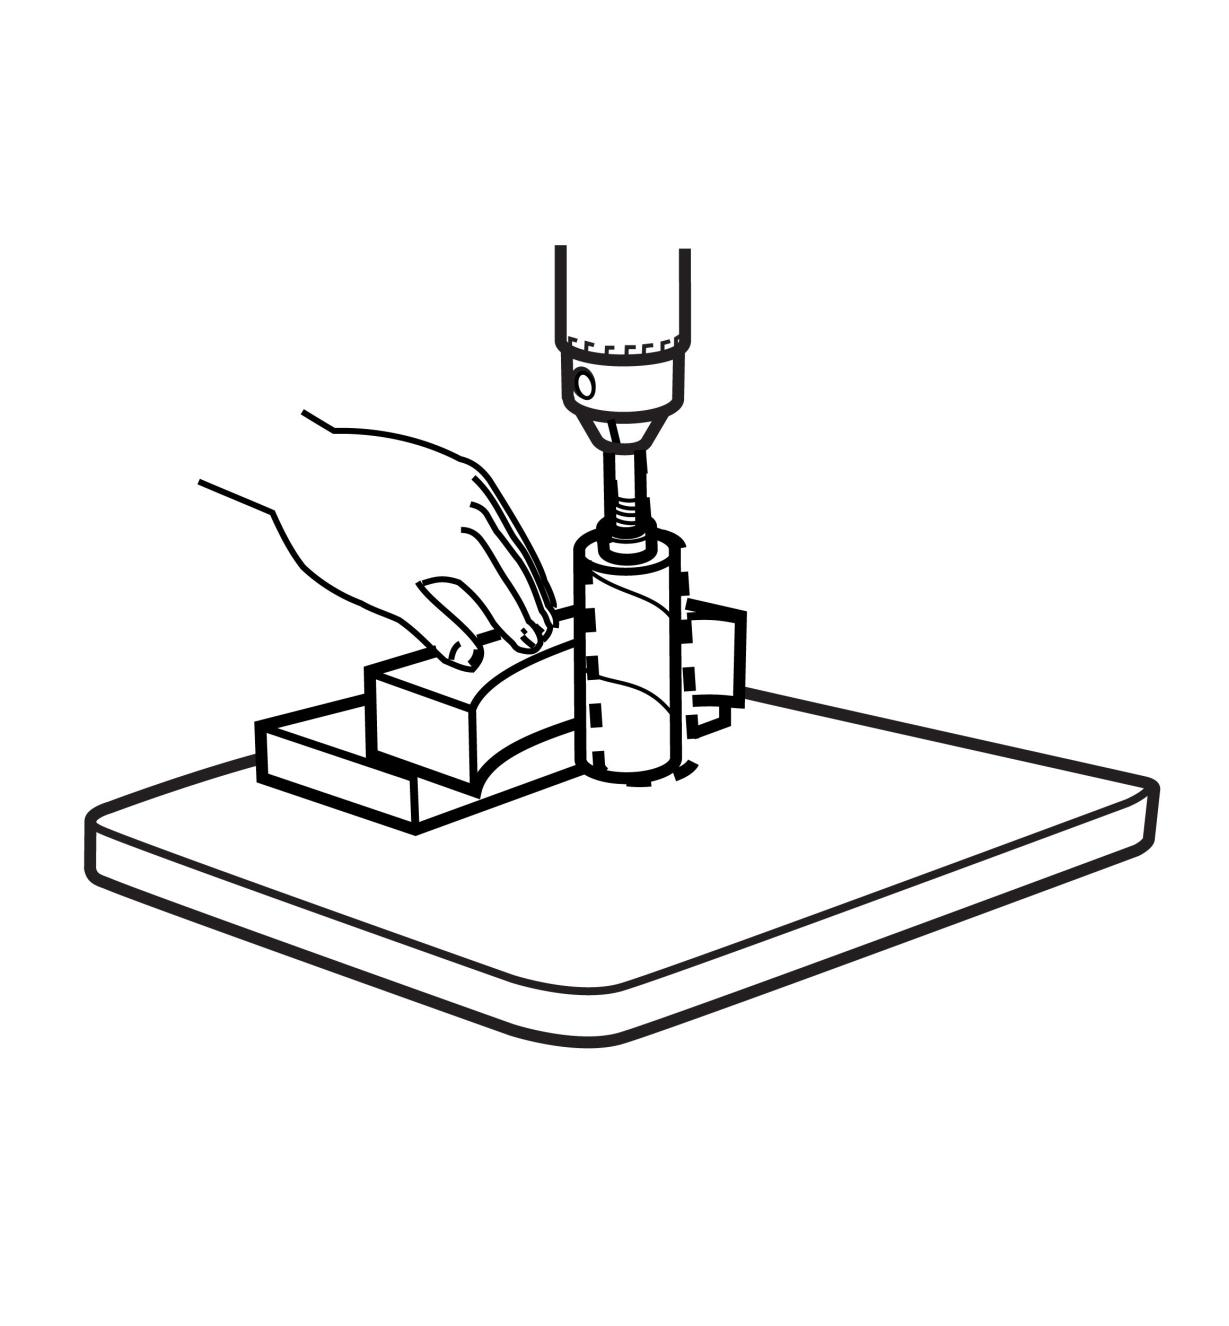 Illustration of sanding without the Drum-Sander Support System